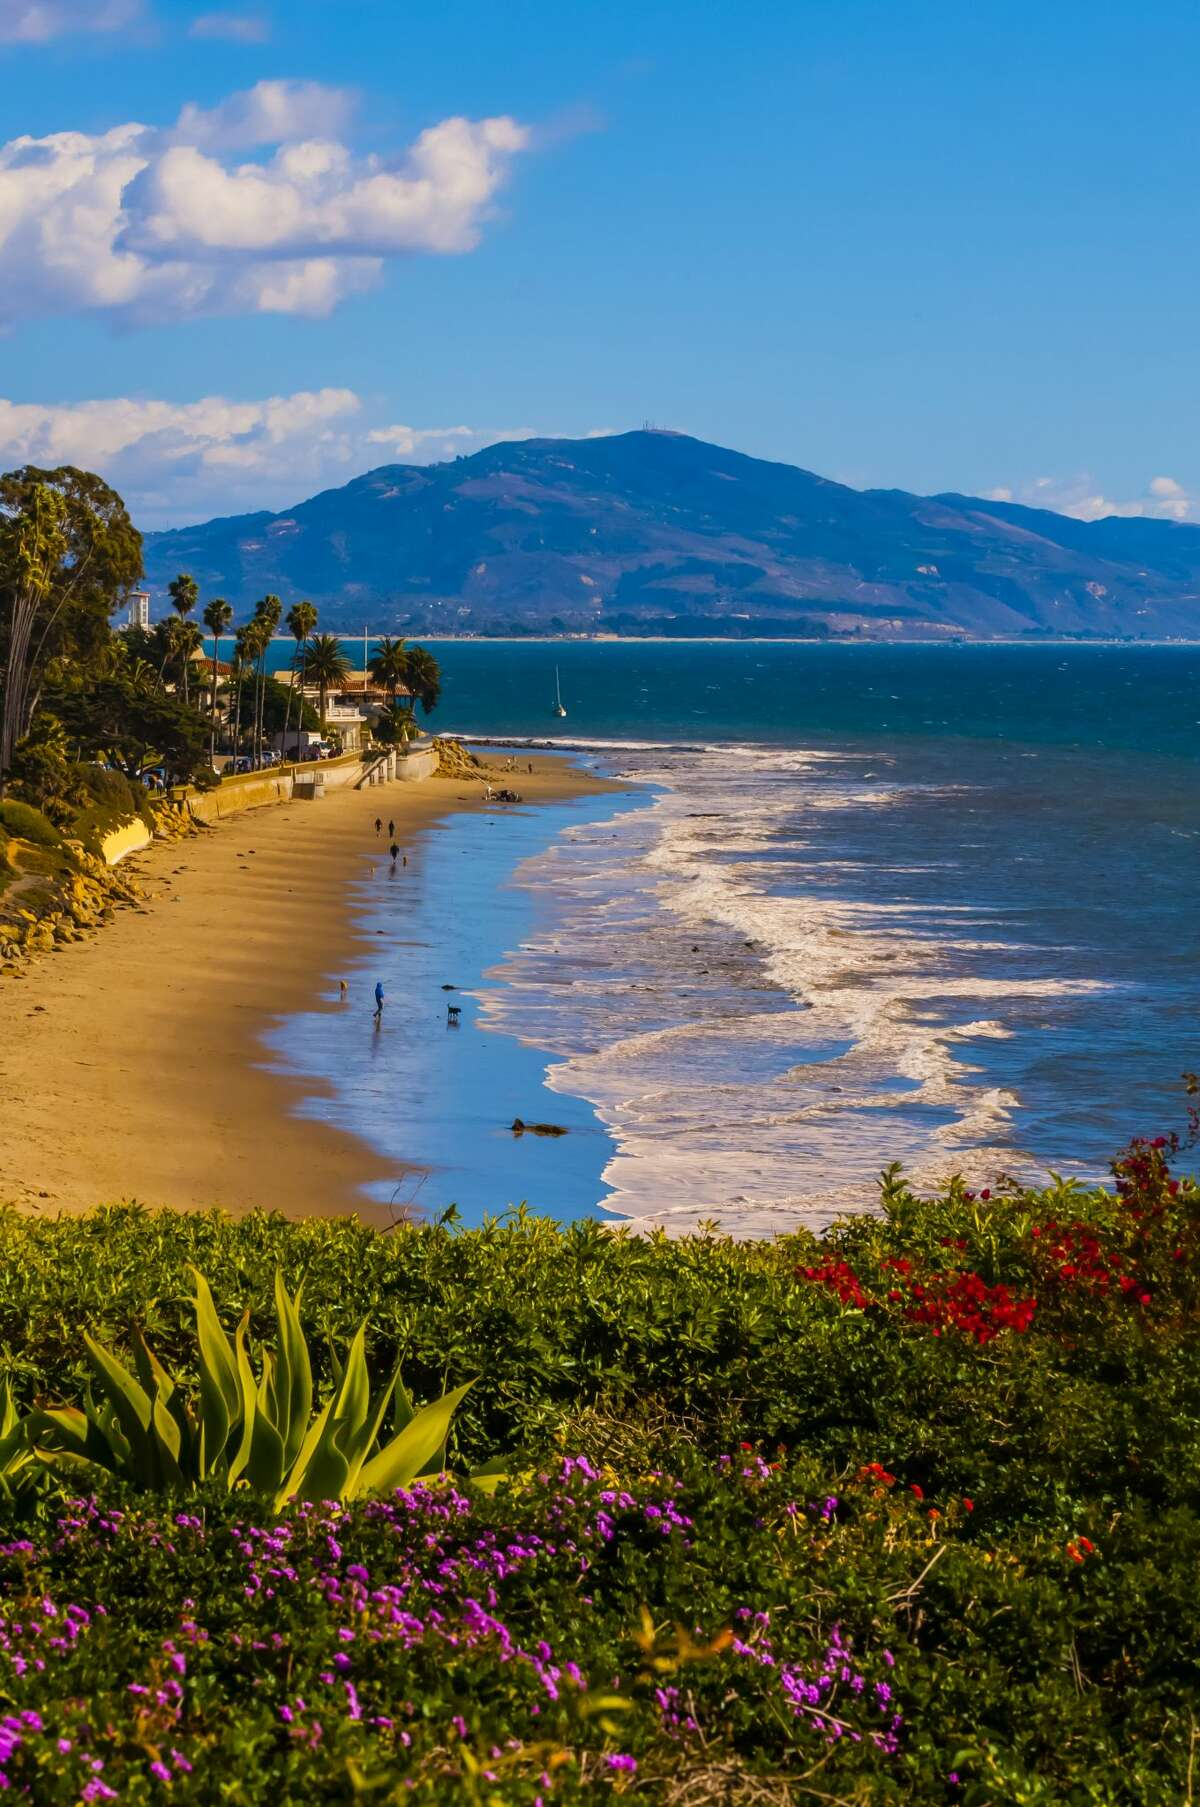 Butterfly Beach is a popular beach in Montecito frequented by locals and visitors alike.